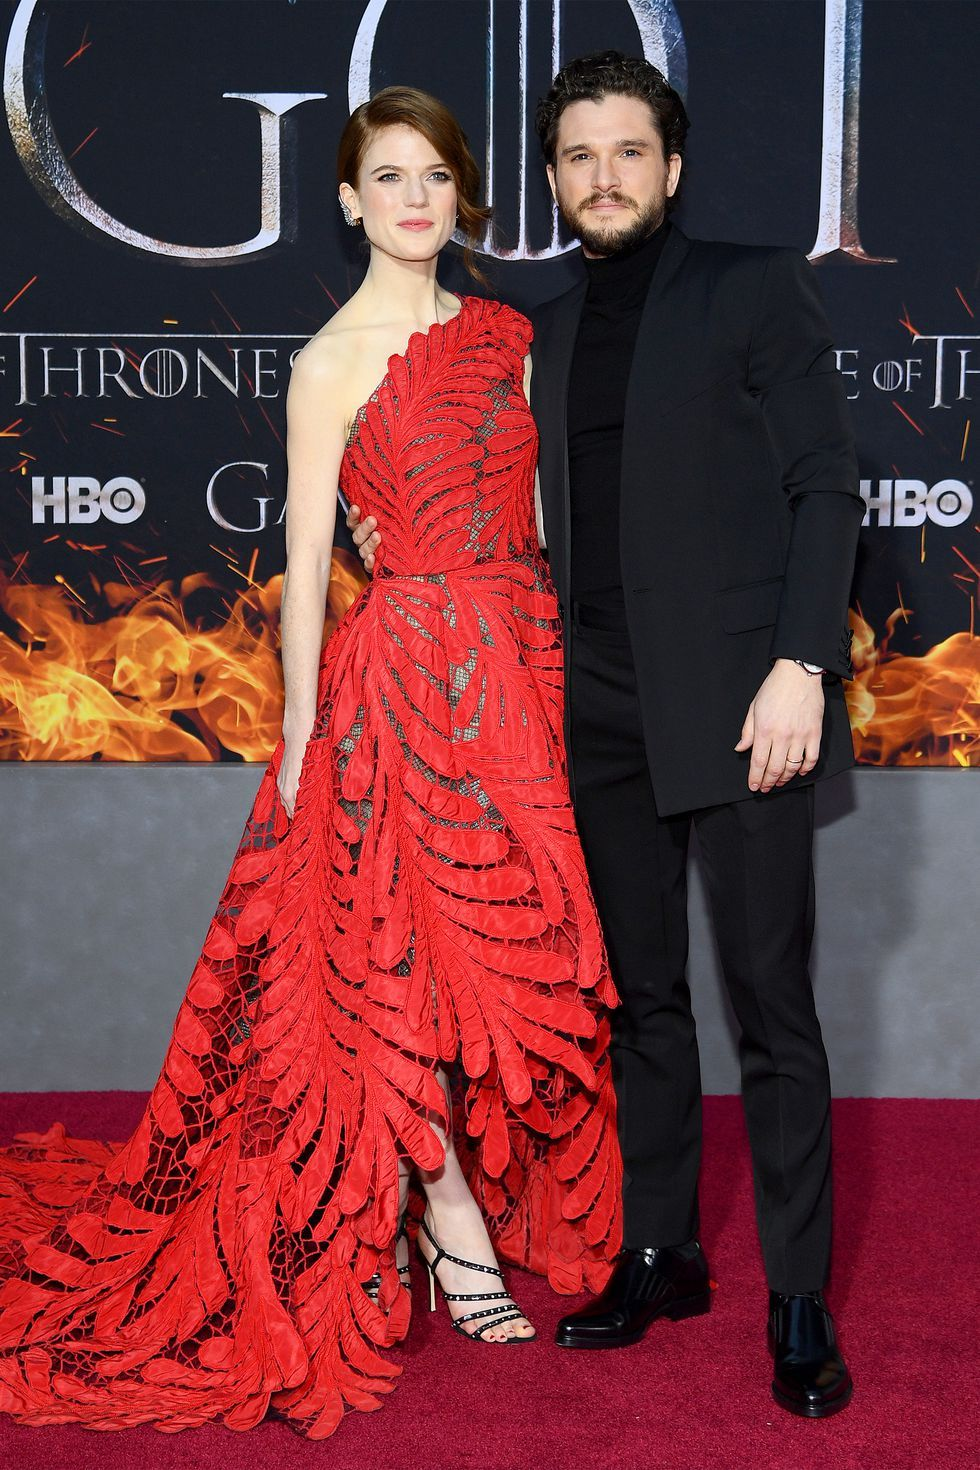 Rose and Kit, Game of Thrones Season 8 Premiere, New York